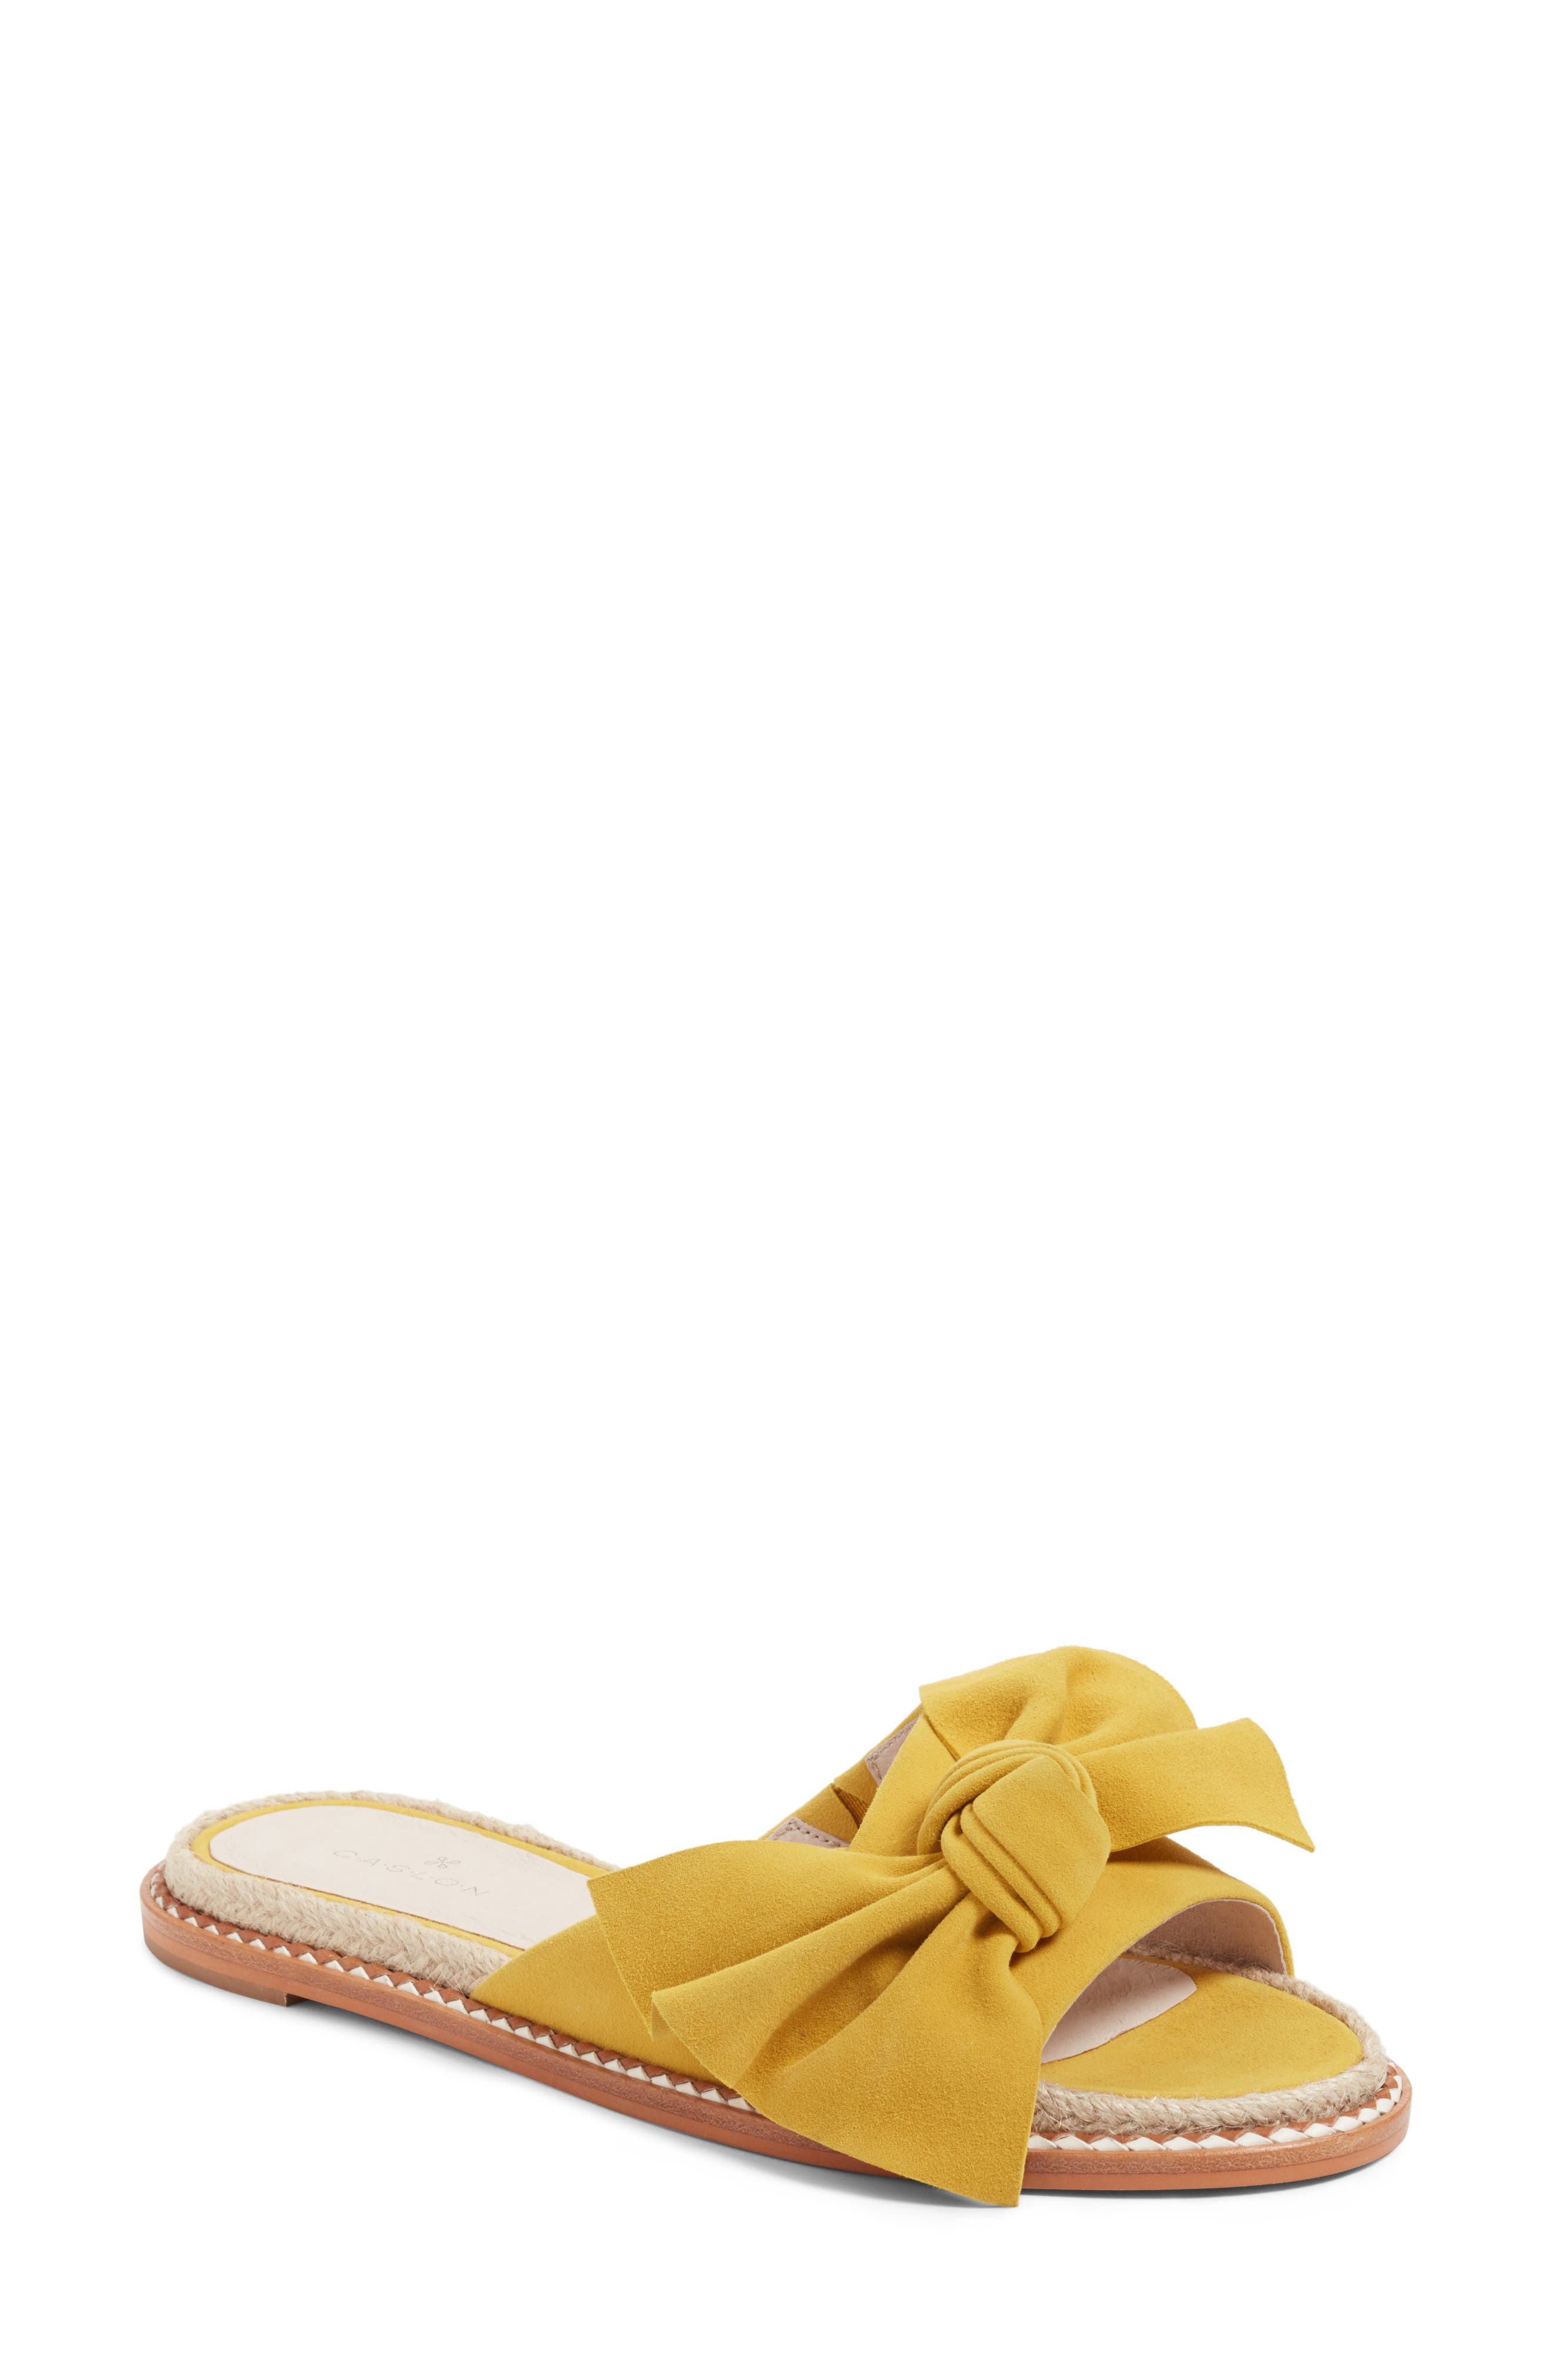 Alternate Image 1 Selected - Caslon® Darcie Slide Sandal (Women)